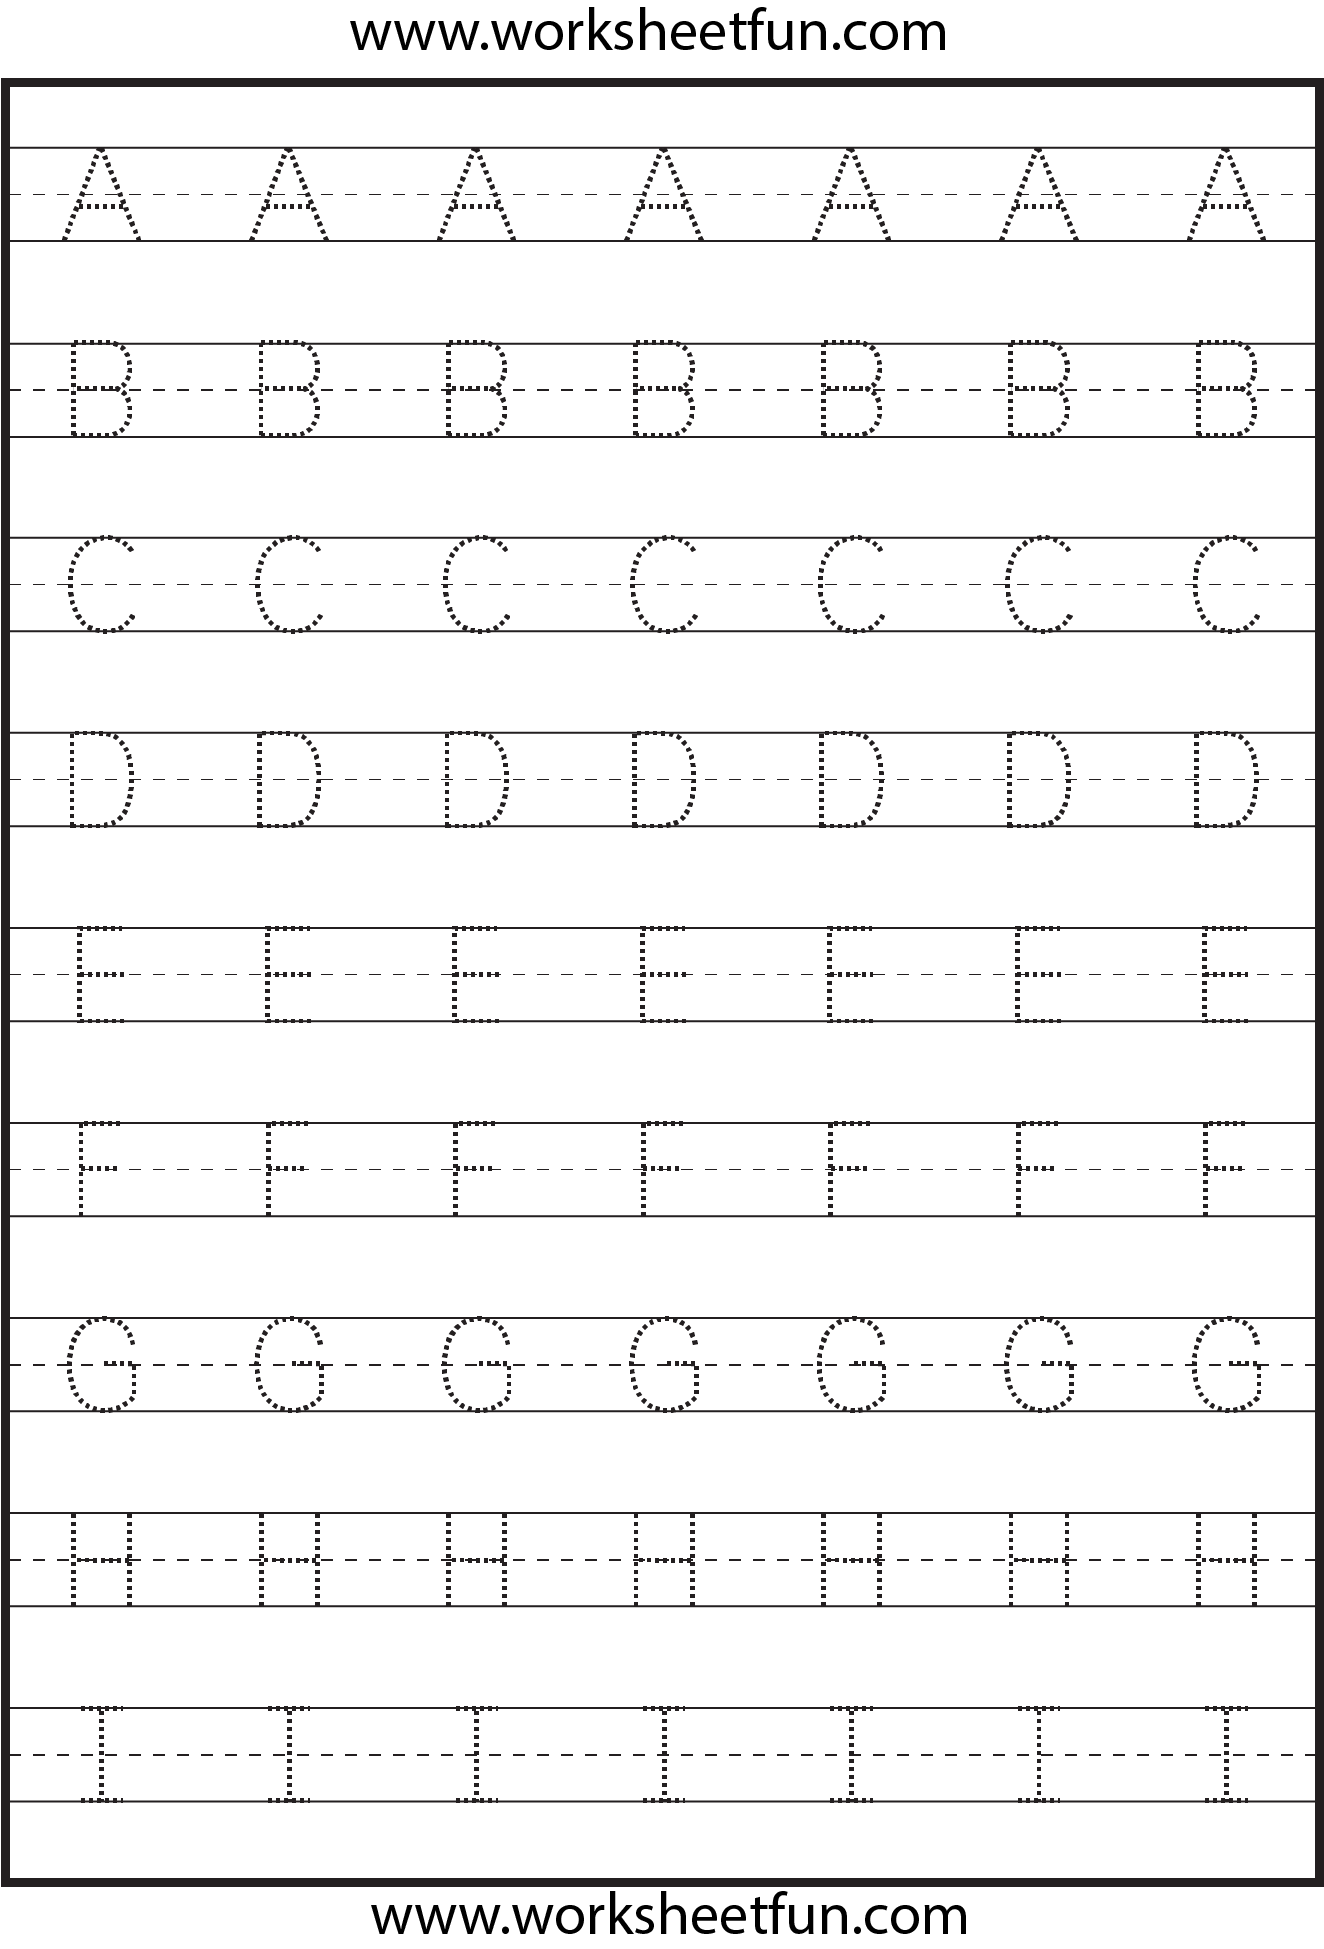 Worksheets Tracing Alphabet Worksheets tracing uppercase letters capital 3 worksheets letter tracing